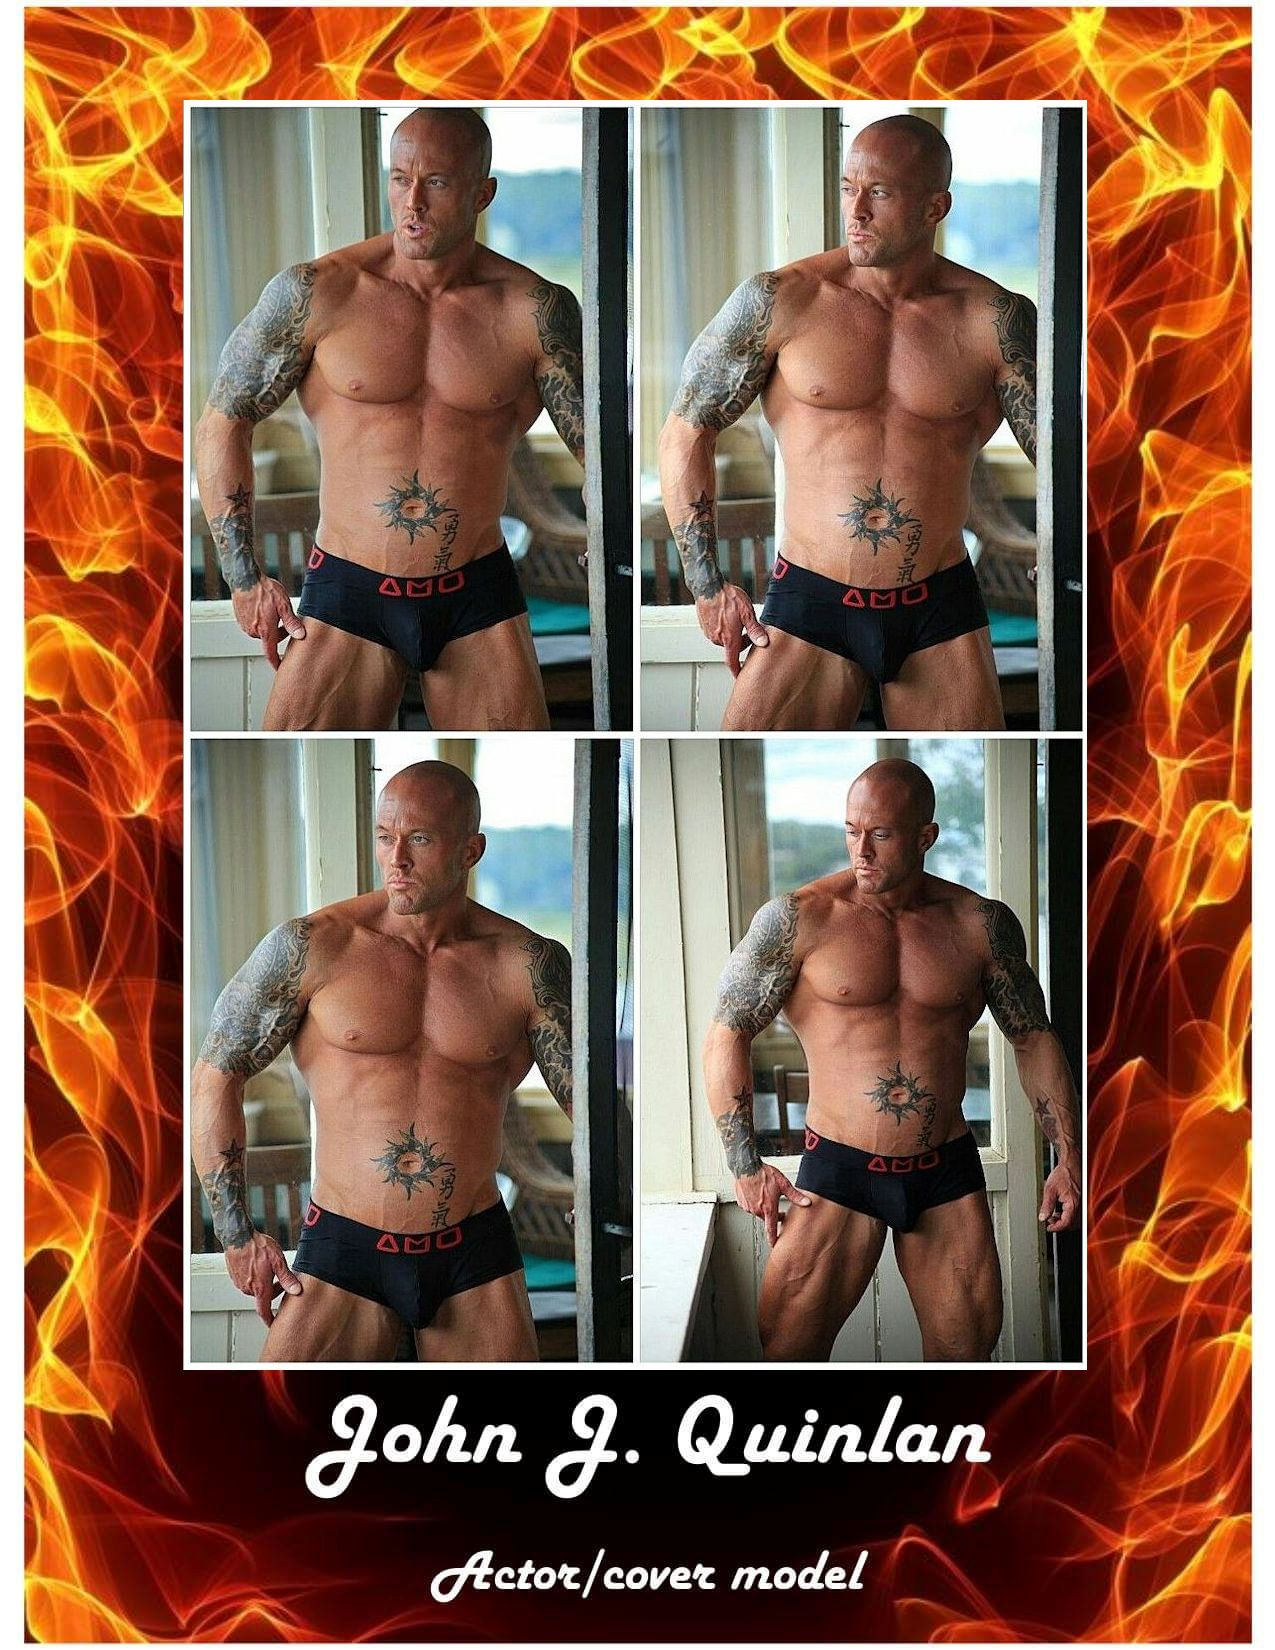 Cover Model & Actor John Joseph Quinlan by Roxanna. #JohnQuinlan